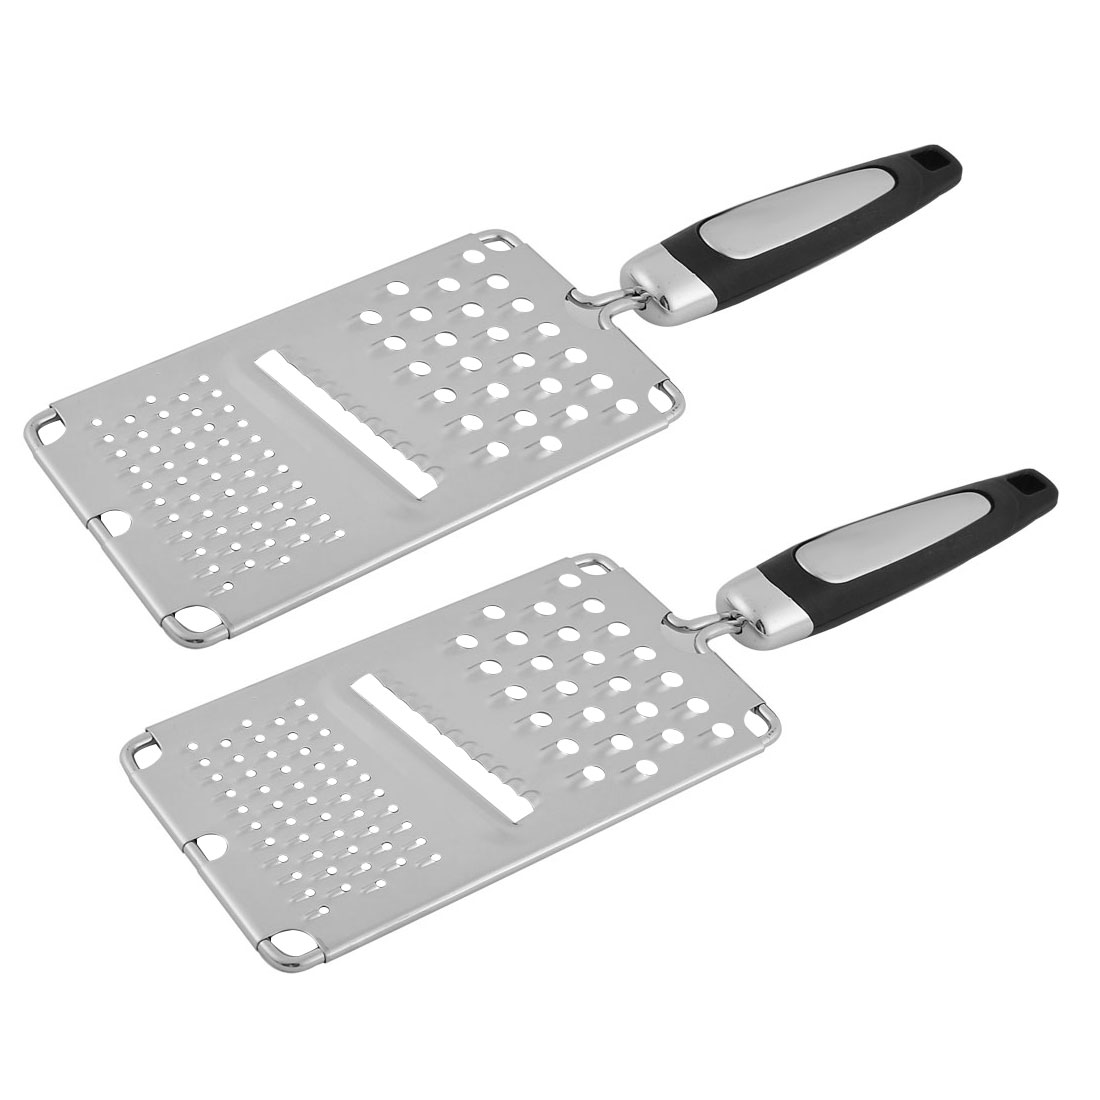 Household Plastic Handle Stainless Steel Potato Garlic Ginger Grater Silver Tone Black 2 Pcs